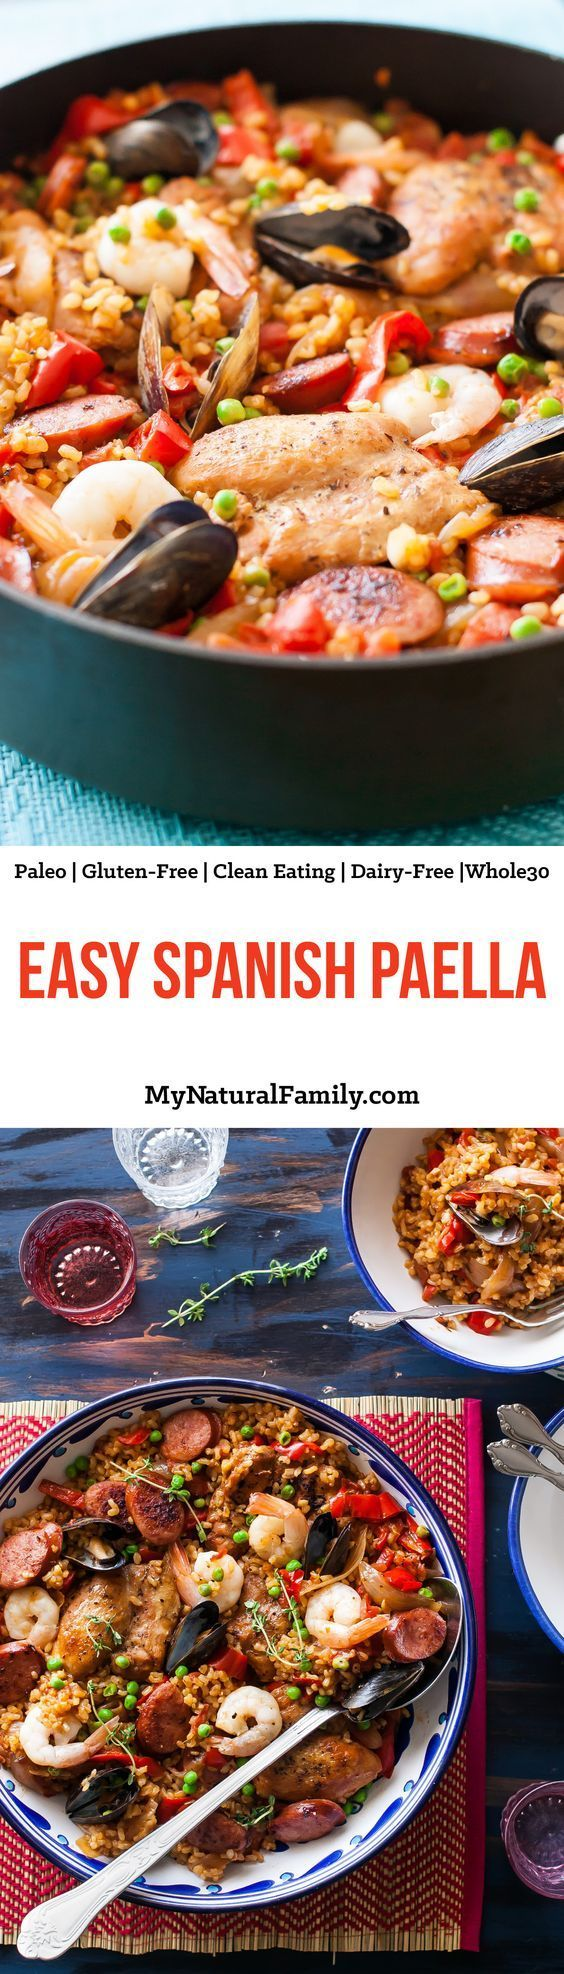 Easy Spanish Paella Recipe {Paleo, Gluten-Free, Clean Eating, Dairy-Free, Whole30} - this recipe is easy to adjust to different diets and add or leave out meat or seafood. I love making it for big groups of people because it has something everyone likes and looks so complicated and fancy, but it's really easy.